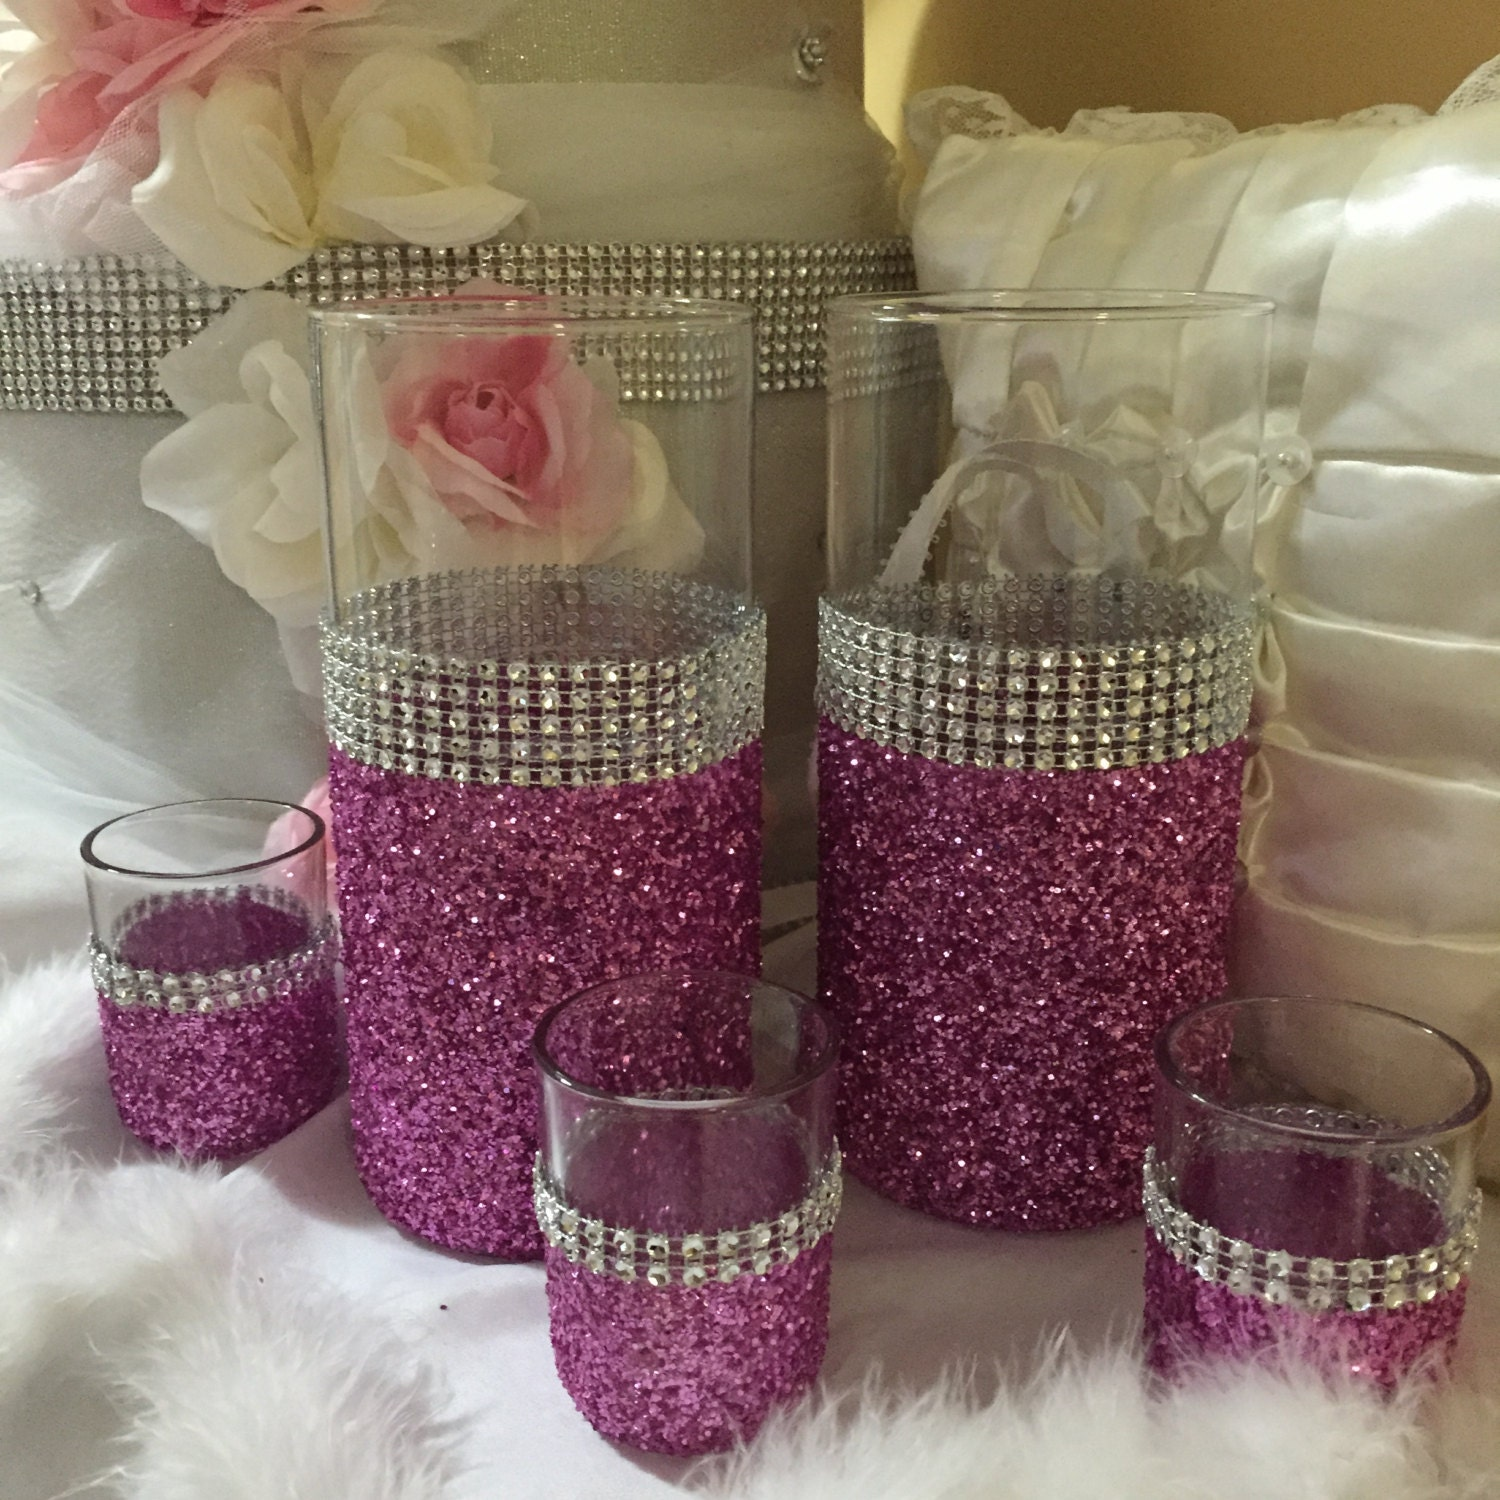 Wedding Centerpiece Pink Glitter Vase 2 Vases And 3